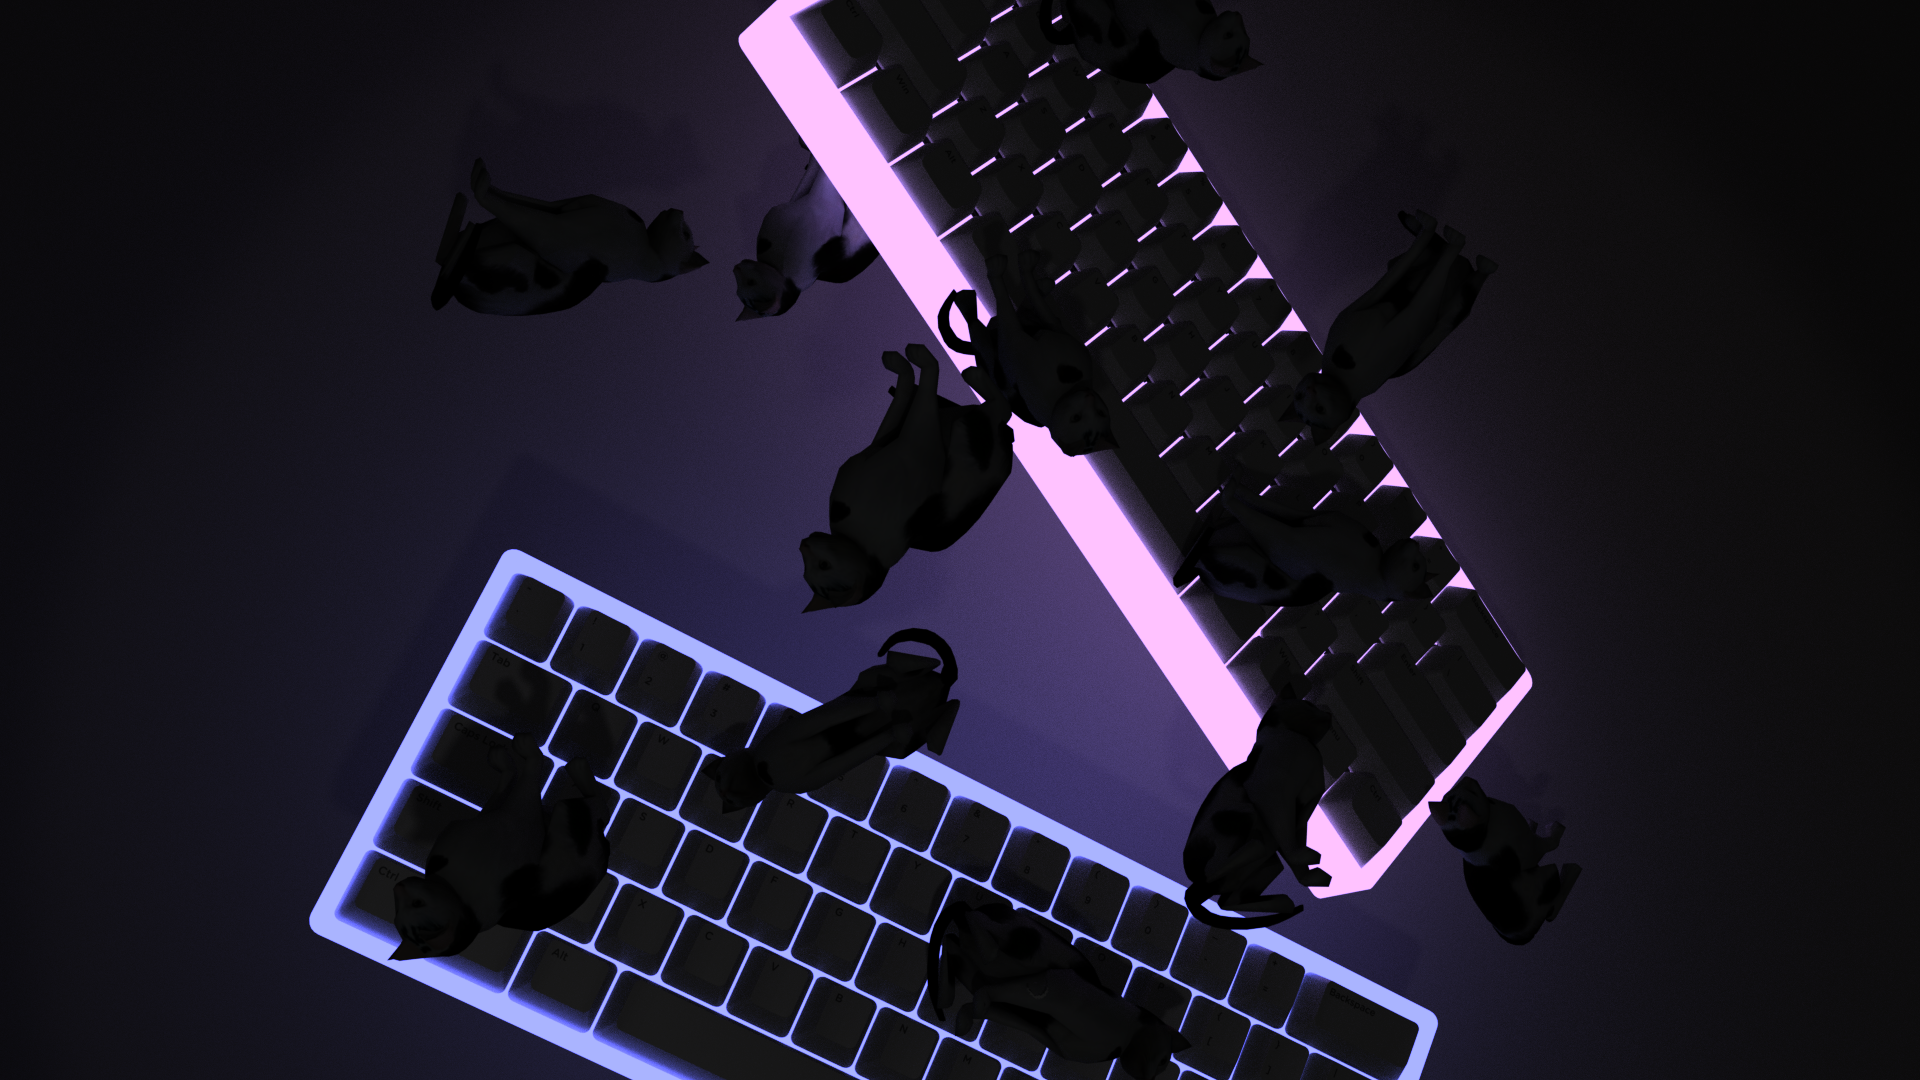 60 Keyboards falling with cats 4k aesthetic wallpaper 1920x1080